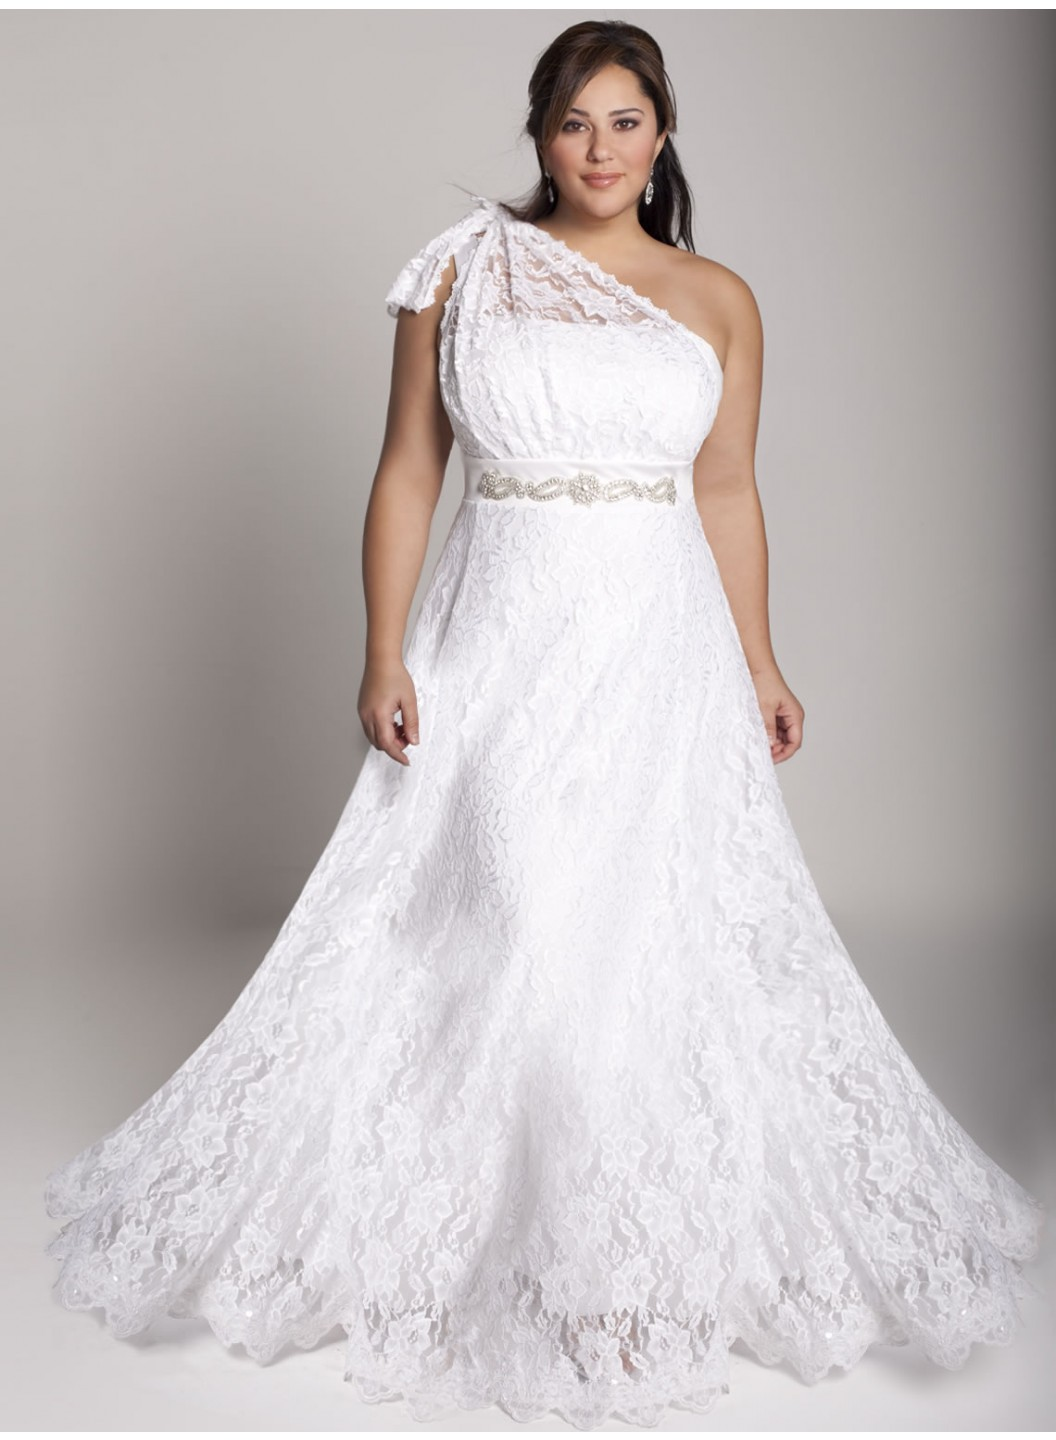 Plus Size Vintage Wedding Dress For Your Total Vintage Wedding Theme